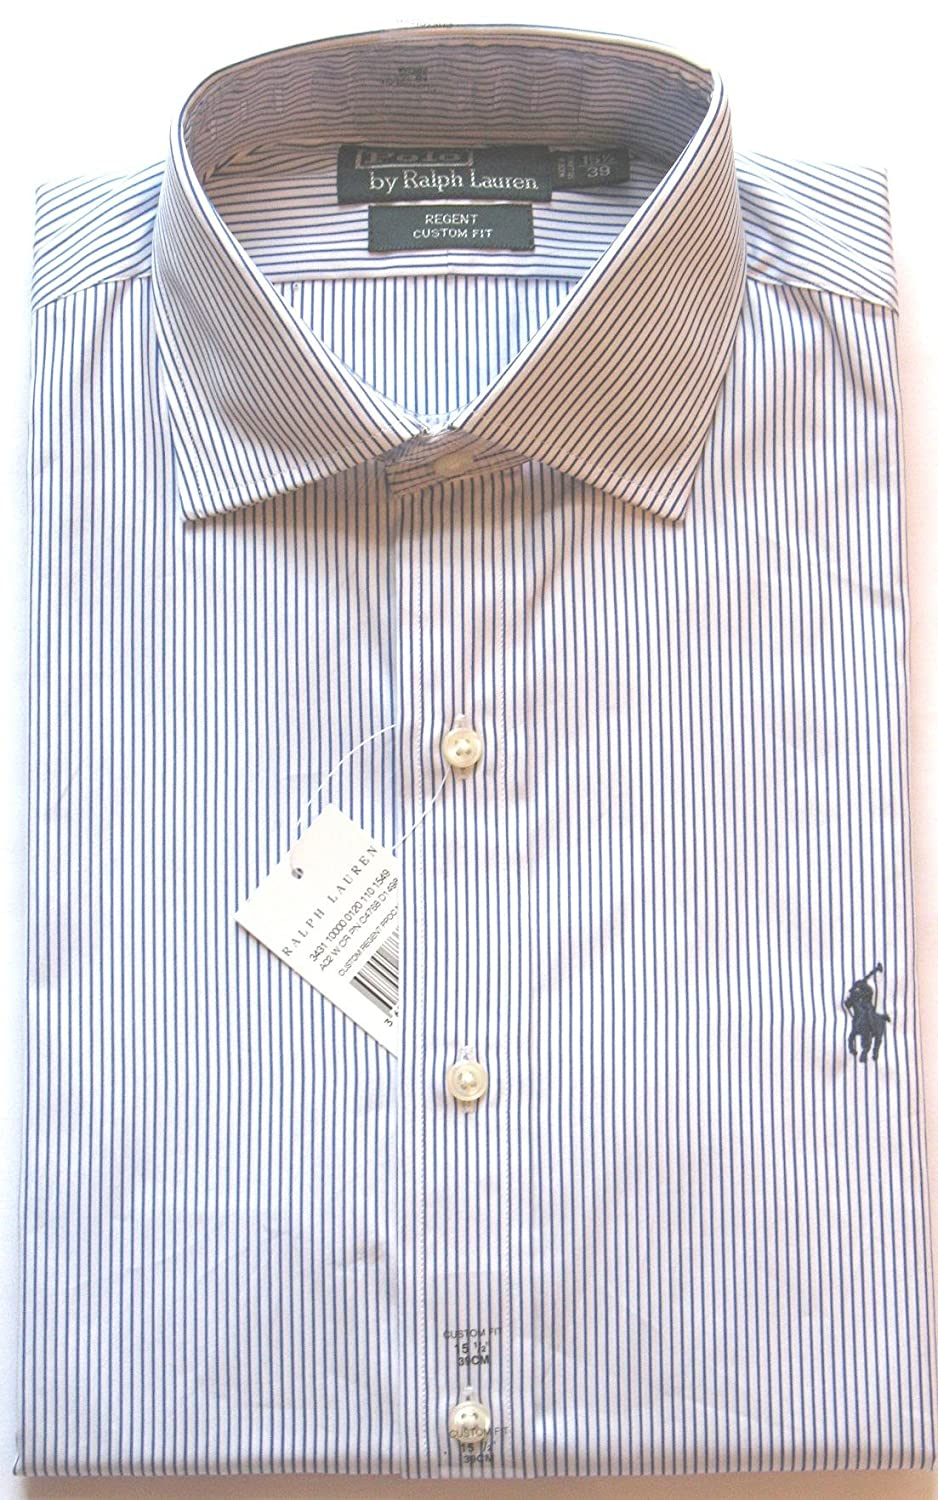 Ralph Lauren Shirt 'Regent' Custom Fit Mens White with Blue Stripe